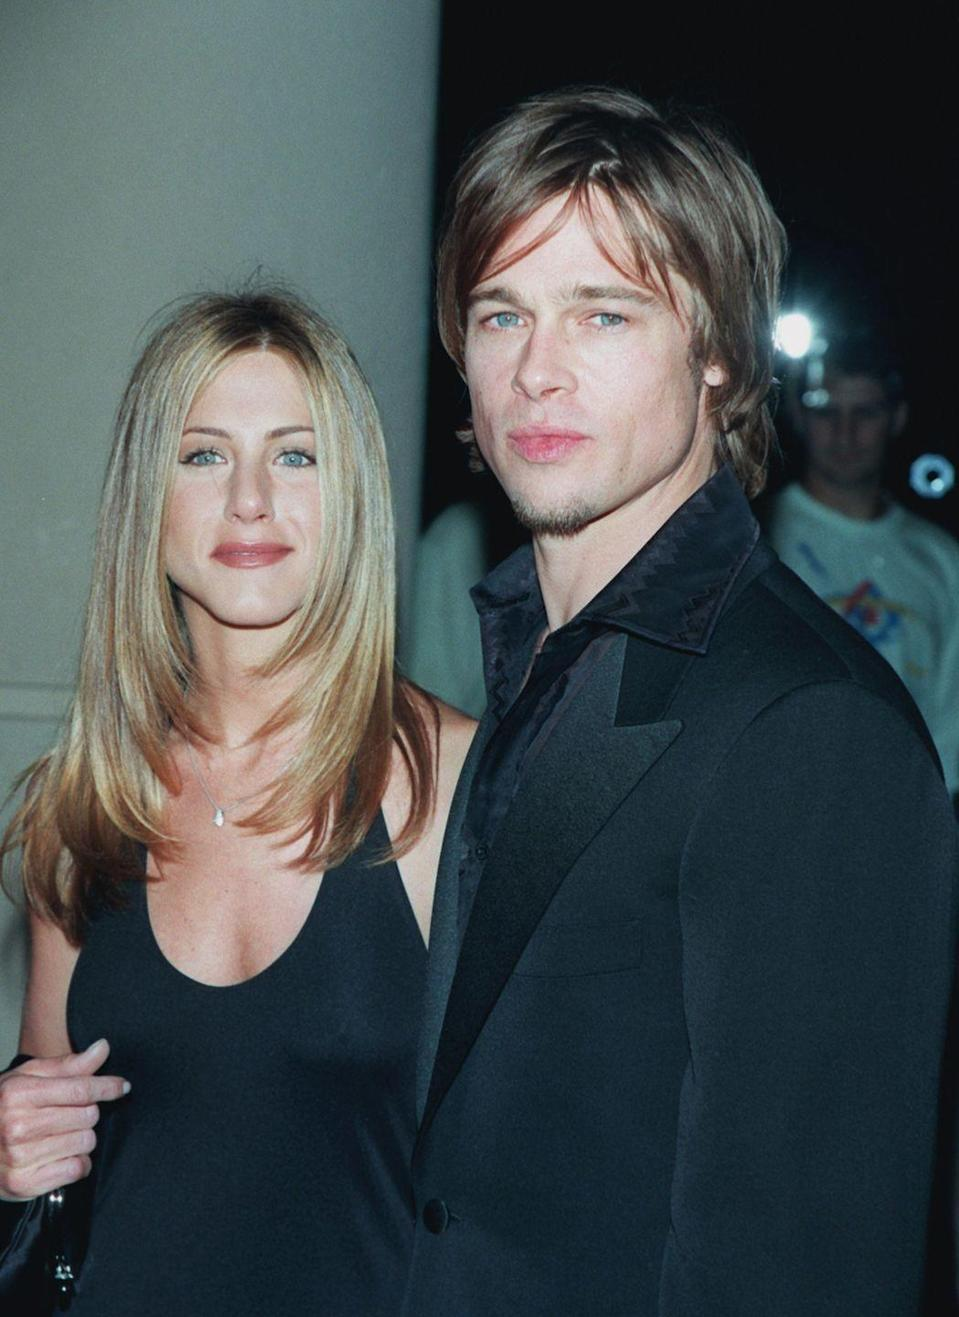 """<p>Hollywood's one-time golden couple, Jennifer Aniston and Brad Pitt, <a href=""""http://people.com/archive/cover-story-isnt-it-romantic-vol-54-no-7/"""" rel=""""nofollow noopener"""" target=""""_blank"""" data-ylk=""""slk:married"""" class=""""link rapid-noclick-resp"""">married</a> on July 29, 2000 in Malibu. The wedding reportedly cost $1 million, and Aniston's <em>Friends </em>co-stars were all in attendance. The bride wore a custom gown by Prada. The couple split in 2005. </p>"""